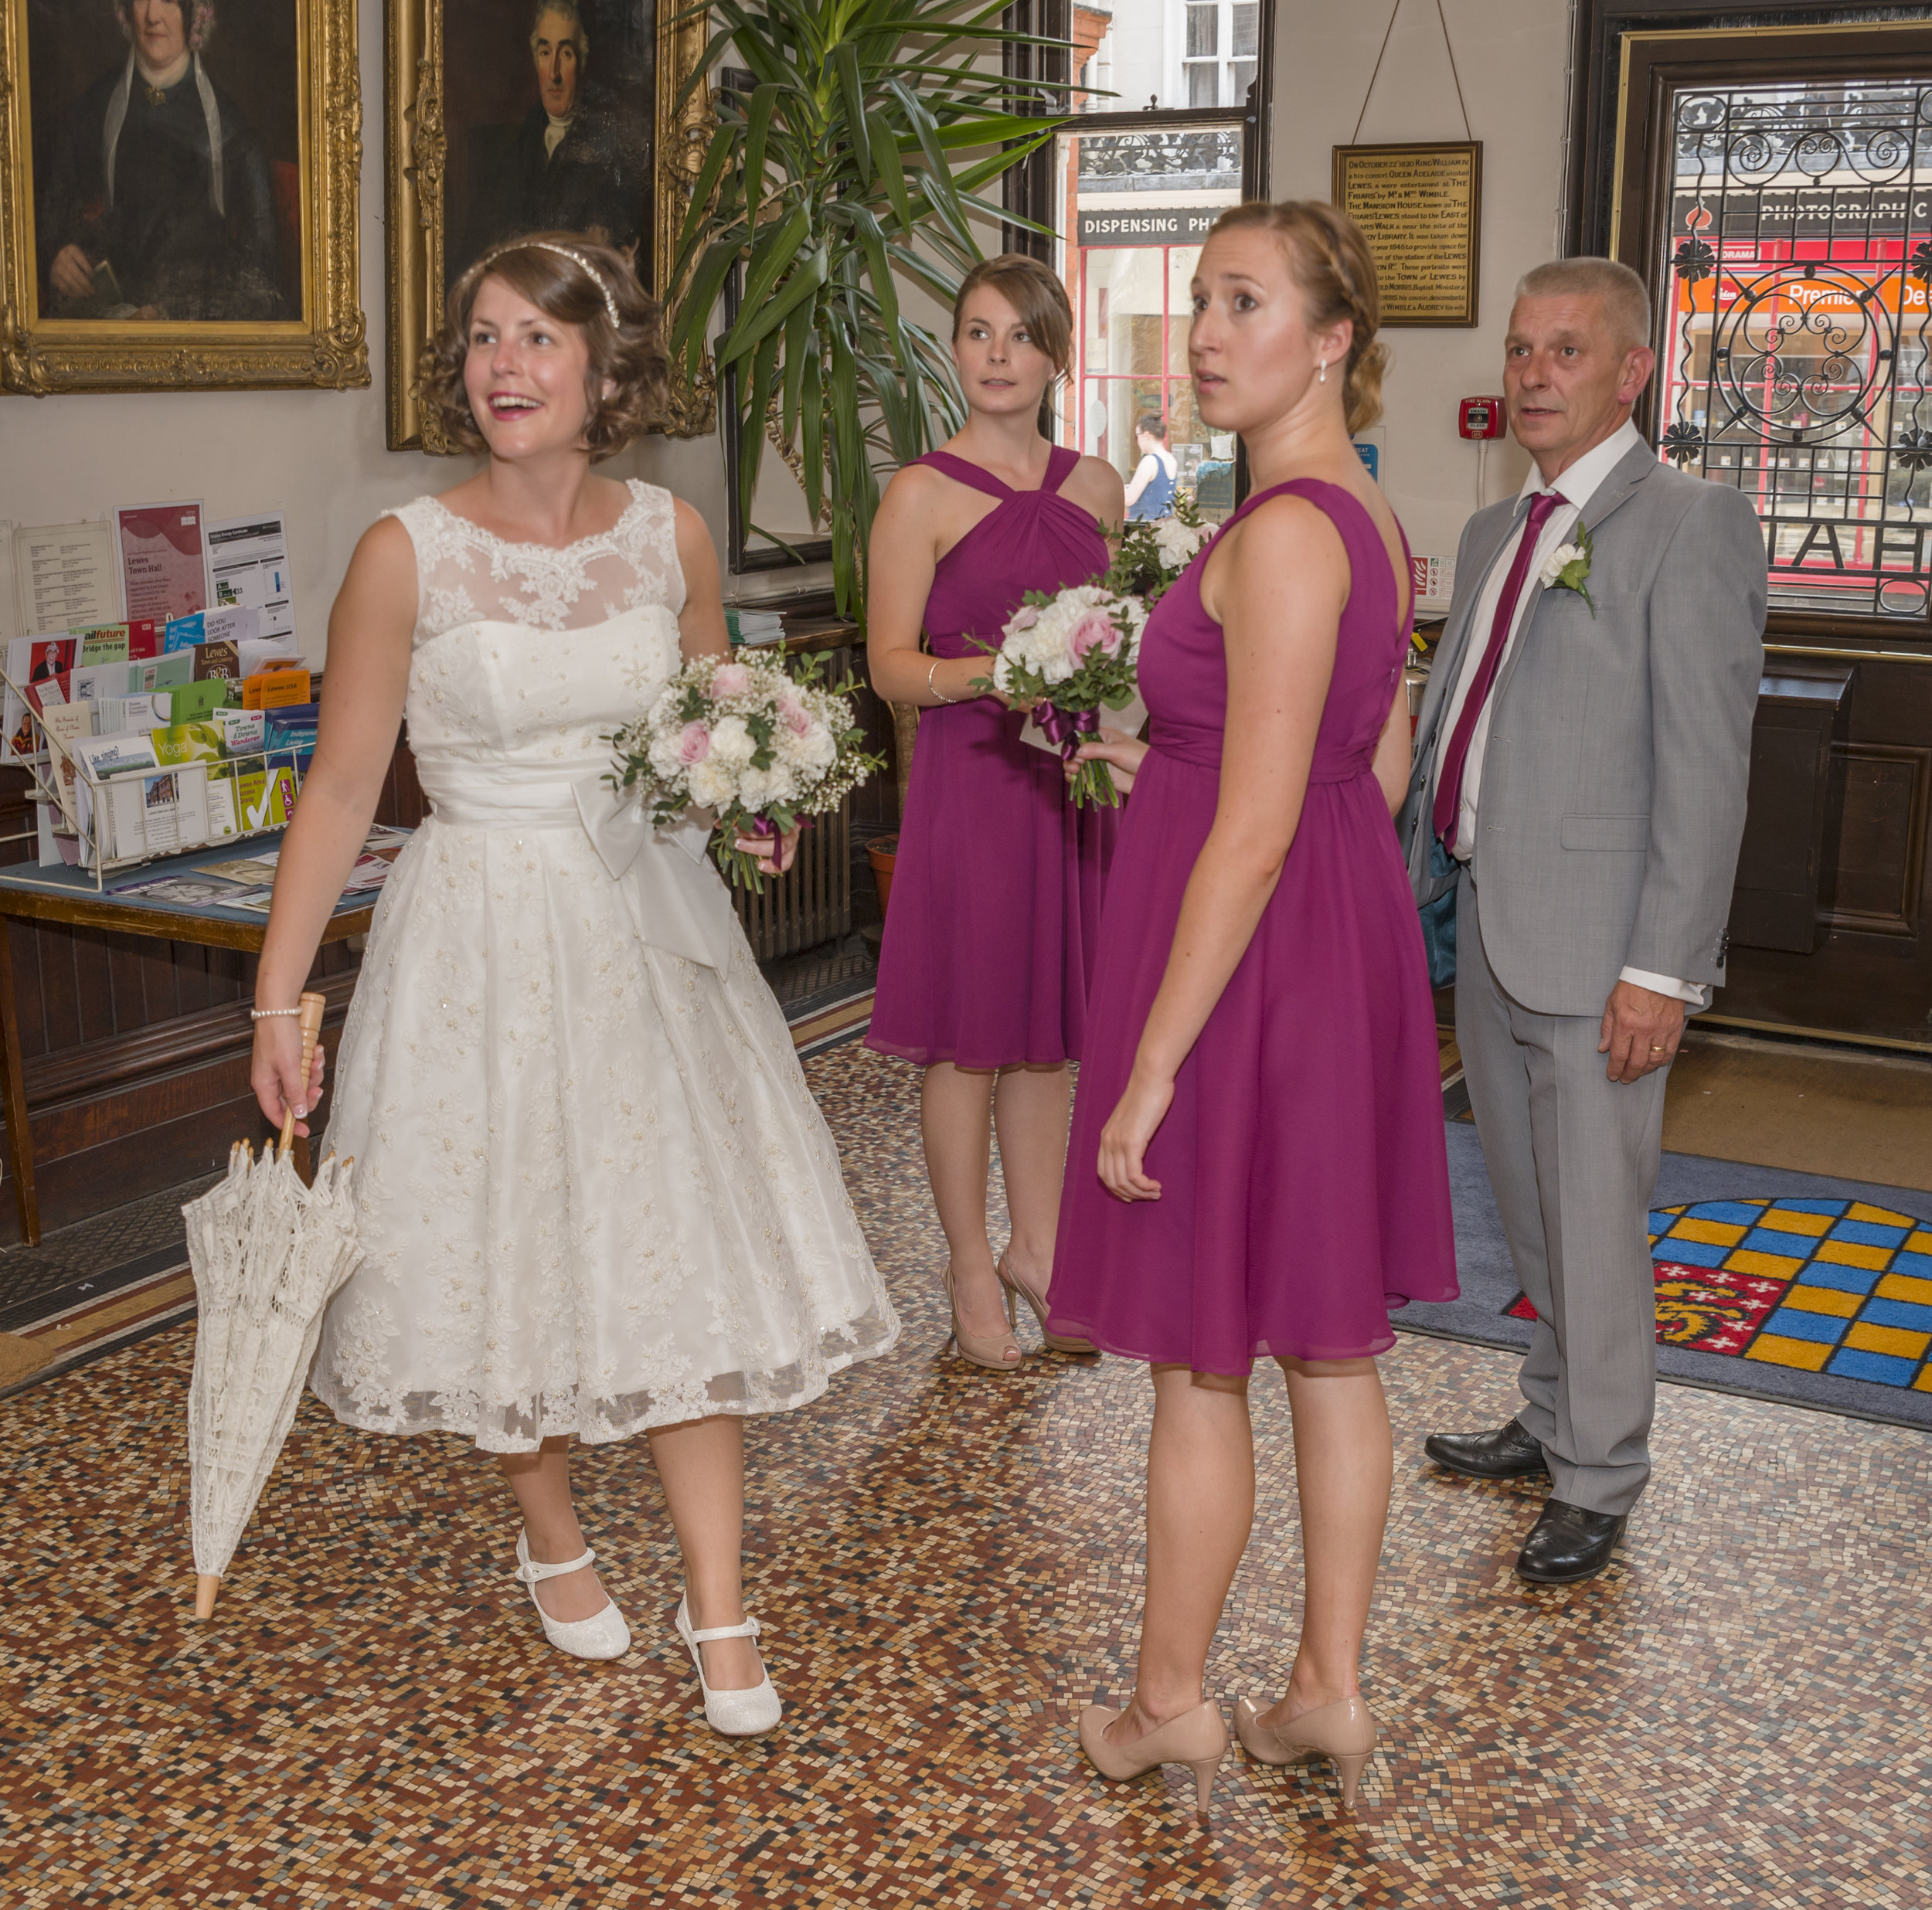 Wedding Photography - Lewes, Town Hall 3